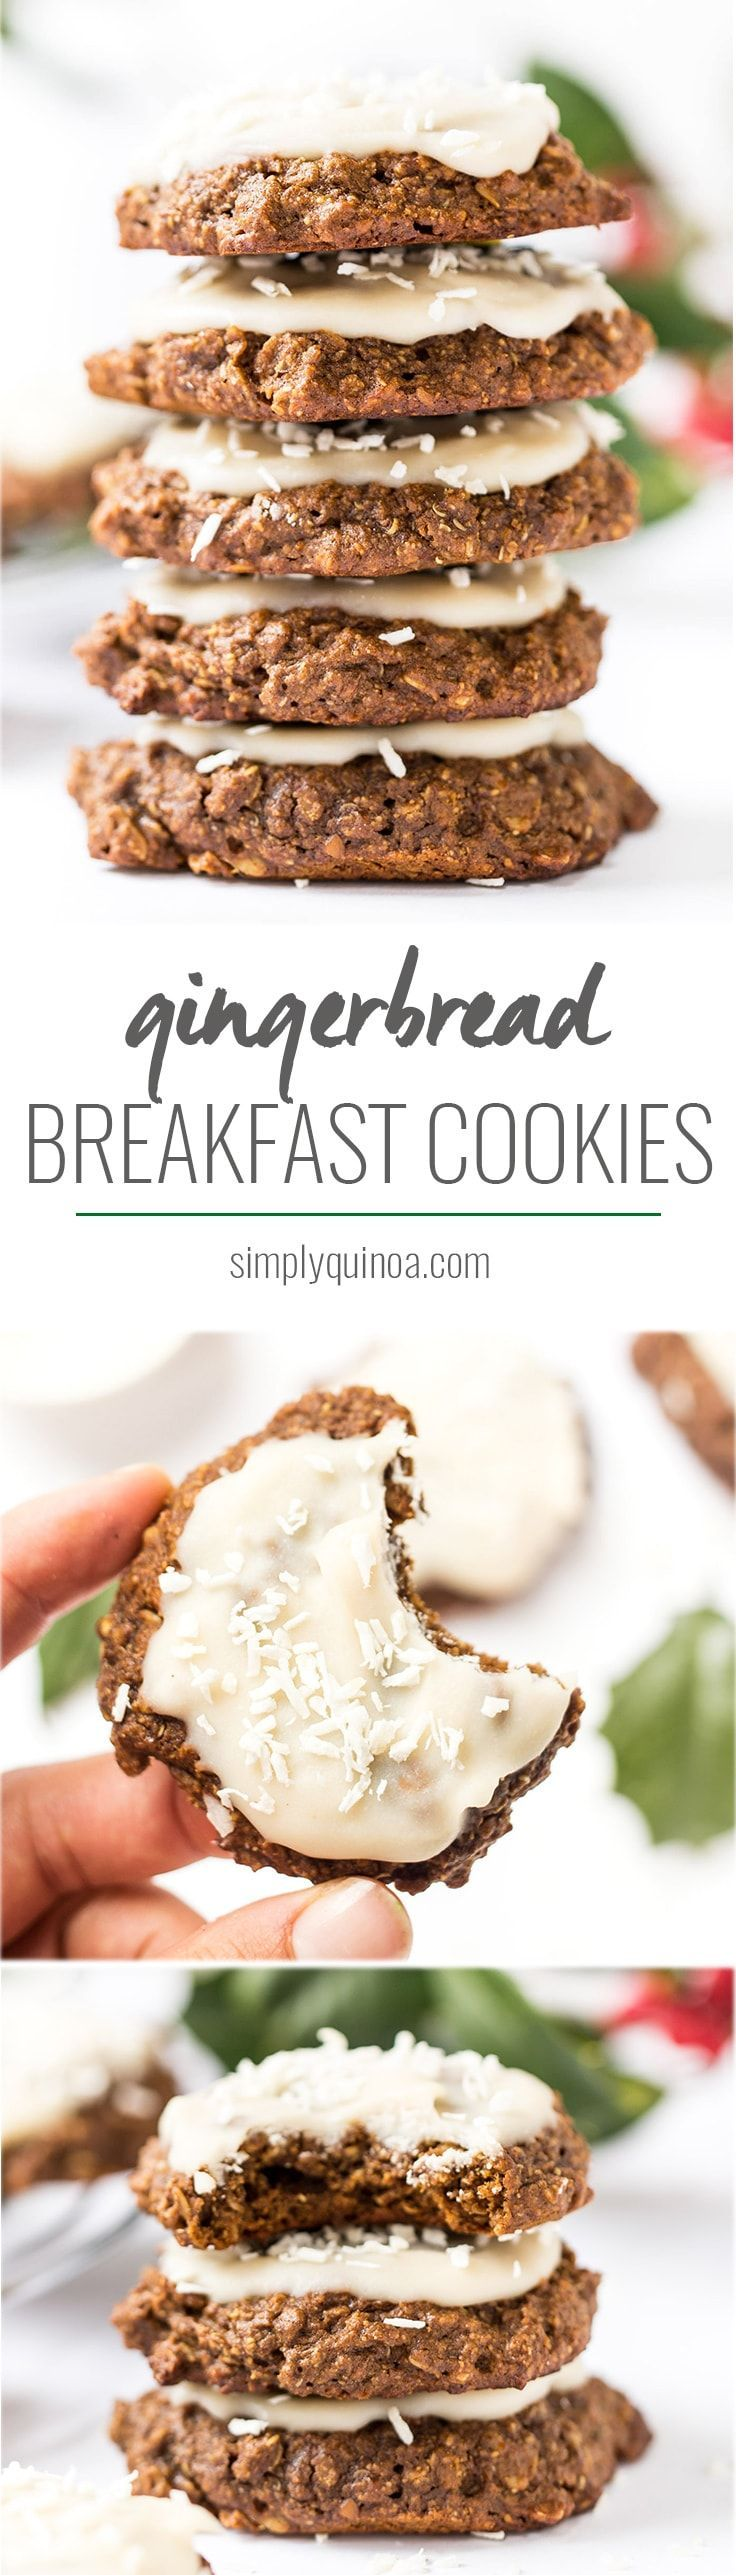 These INCREDIBLE Gingerbread Quinoa Breakfast Cookies has a base of oats, quinoa and banana, but has all the flavors of classic gingerbread. And they're HEALTHY too! [vegan + gf]